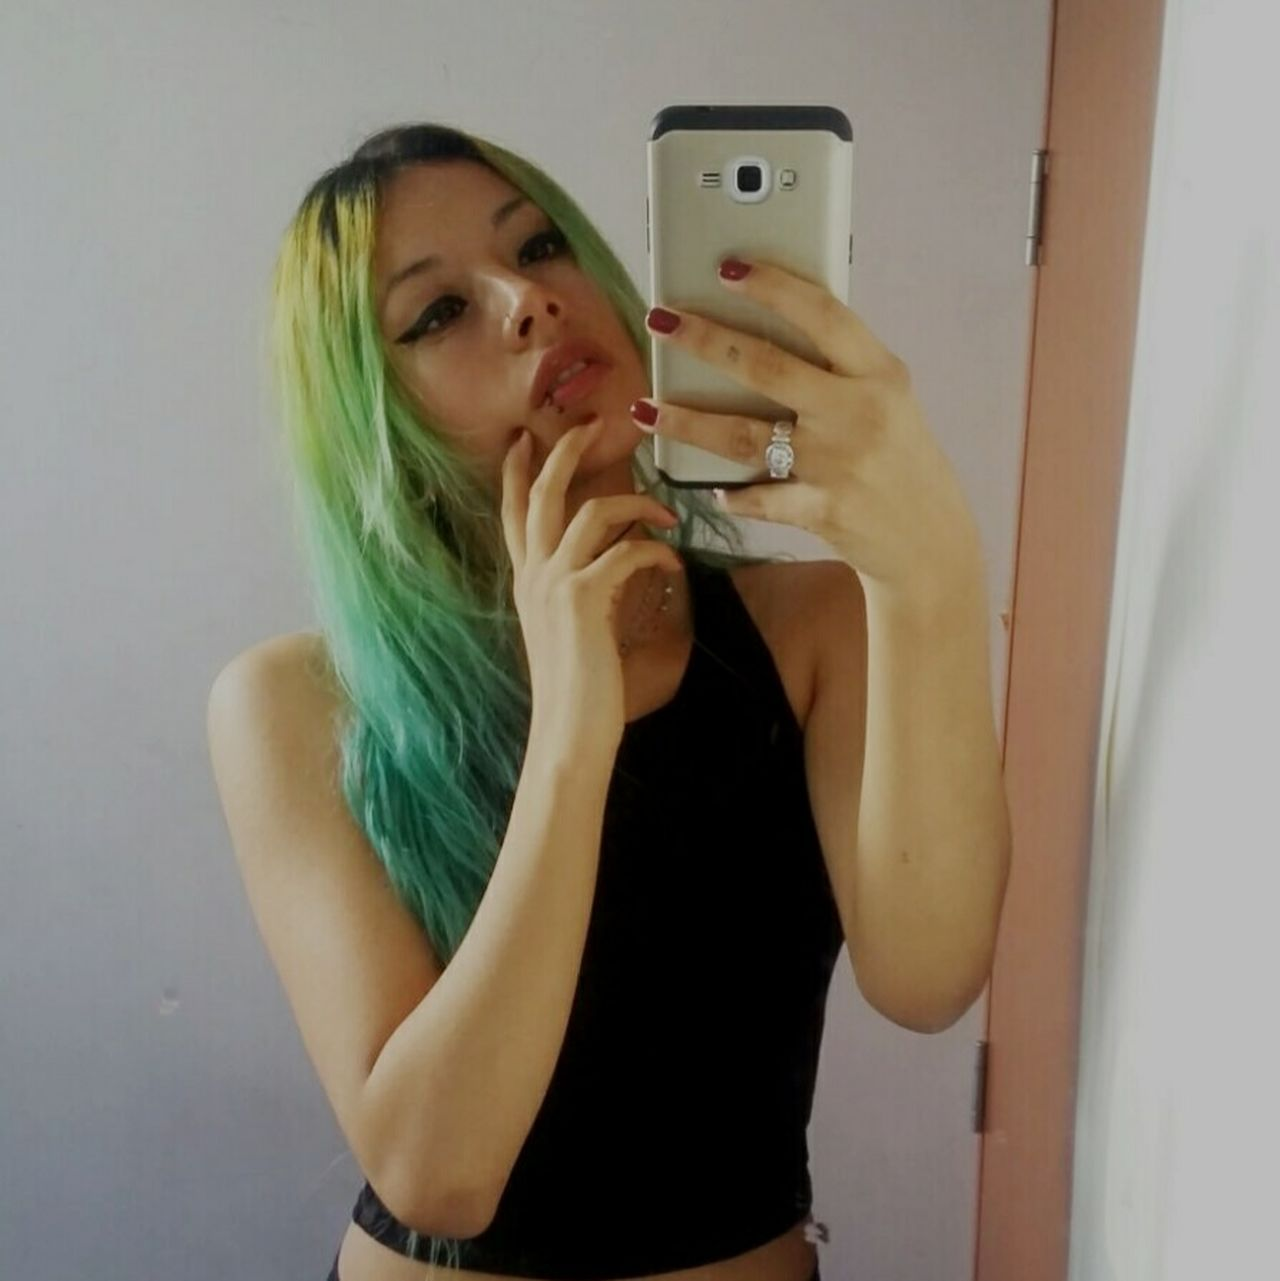 Snapchat: linnethrivas Selfie Lifestyles Relaxing Snapshot Beautiful Snapchat Happiness Snapchat Me Taking Photos Girl Photography Beauty Piercings That's Me First Eyeem Photo Dyed Hair Coloredhair Stylish Plugs Enjoying Life Love Green Color Nail Art Check This Out Photographing